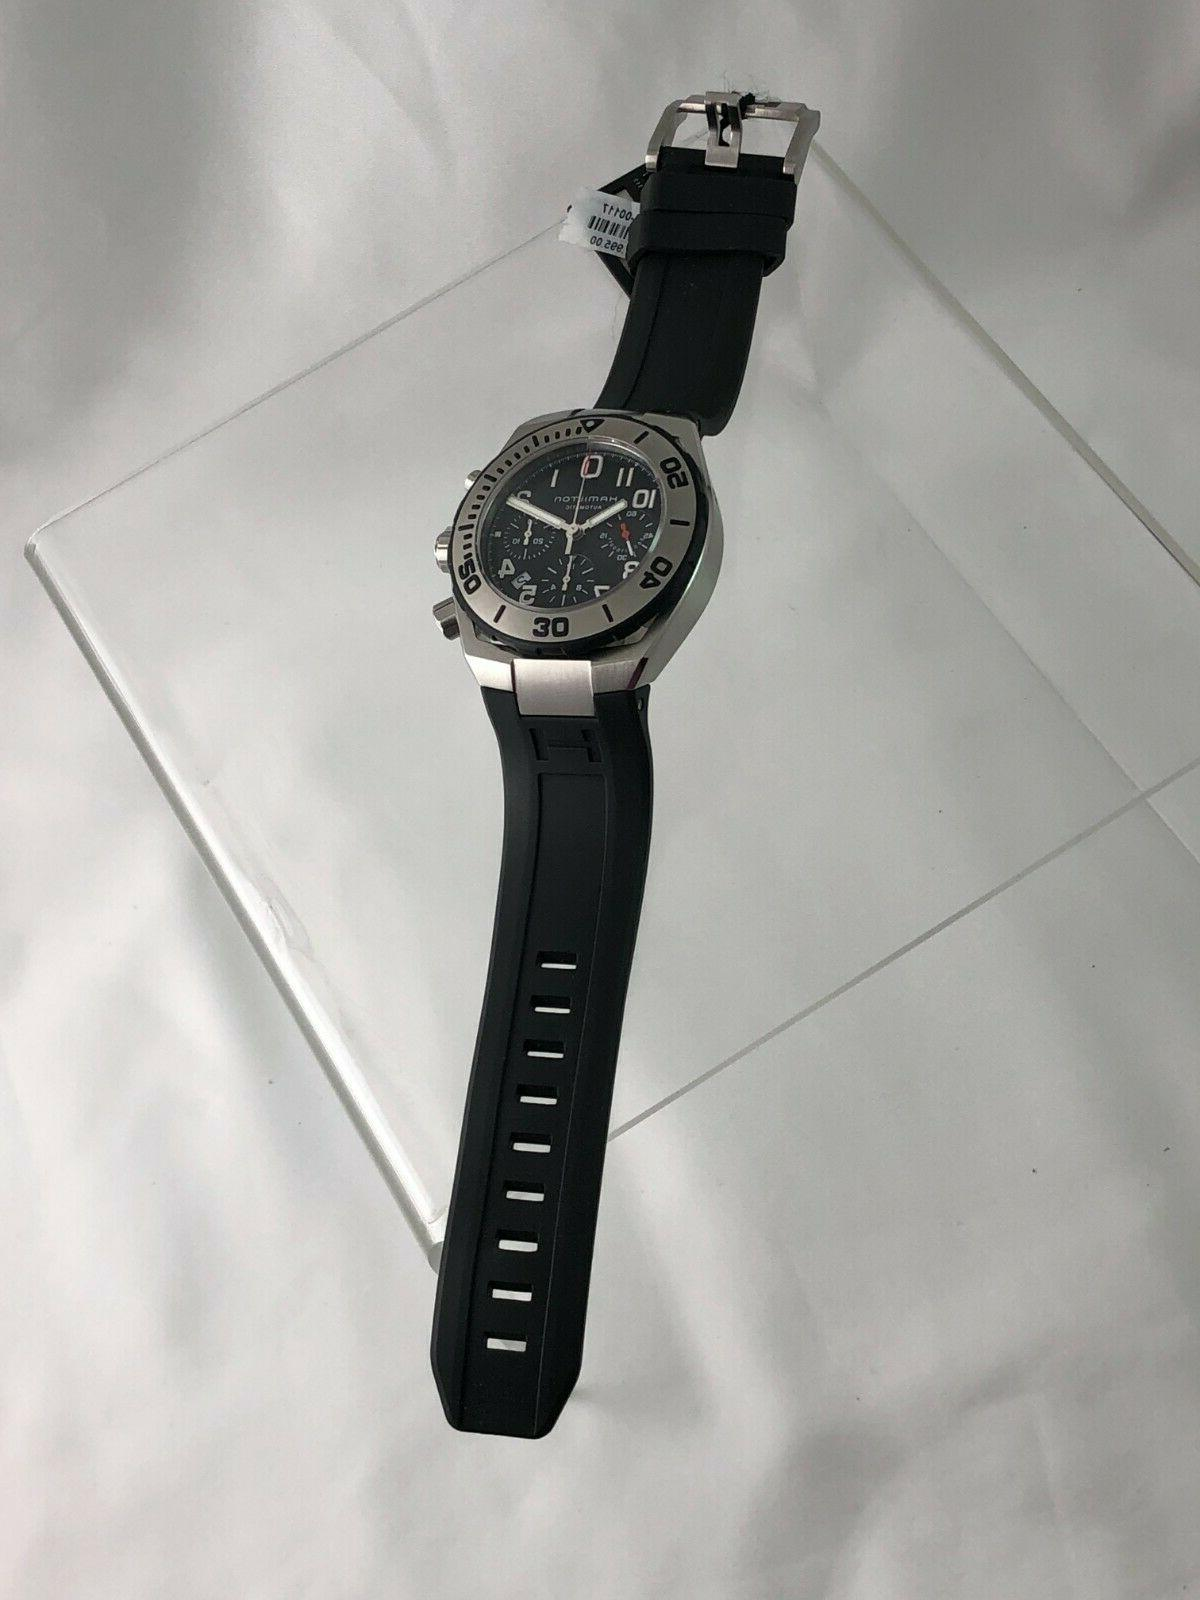 New Hamilton Navy Sub Auto Chrono Dive Watch w/ + Papers